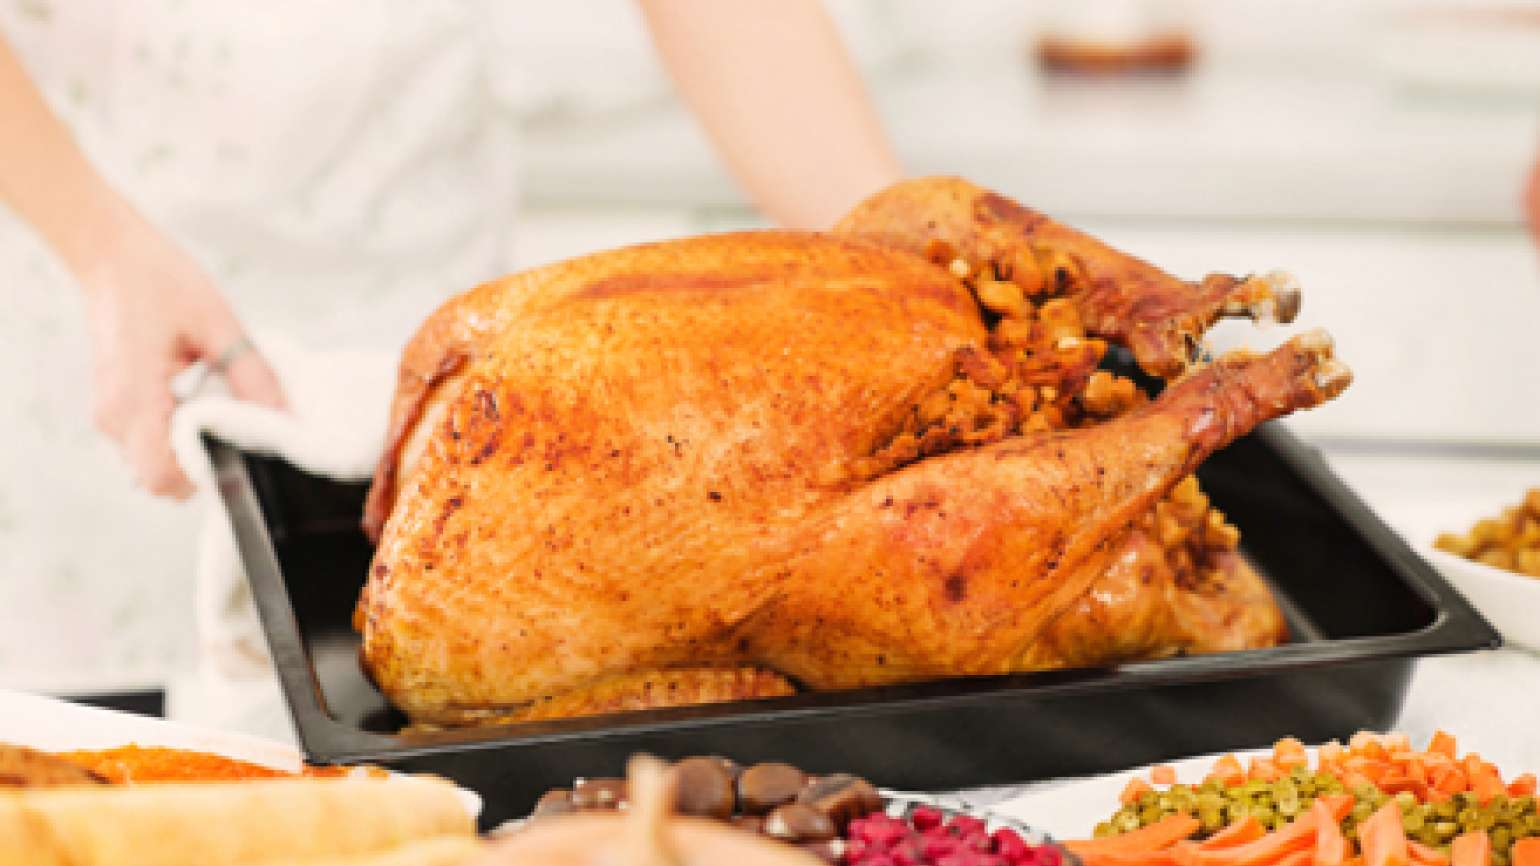 A Thanksgiving turkey with side dishes